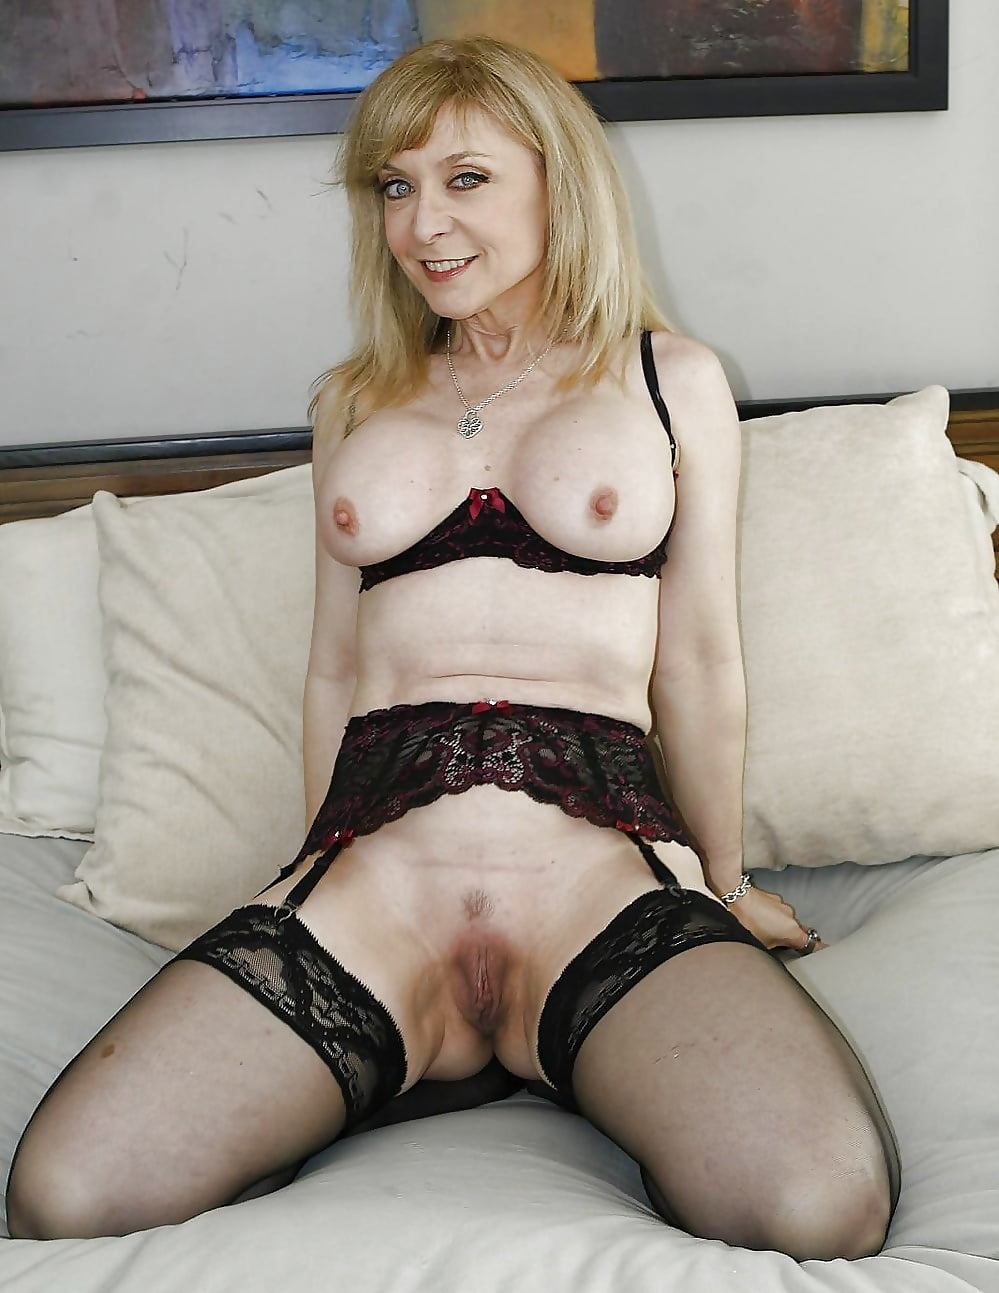 Domination female nina hartley completely nude sex